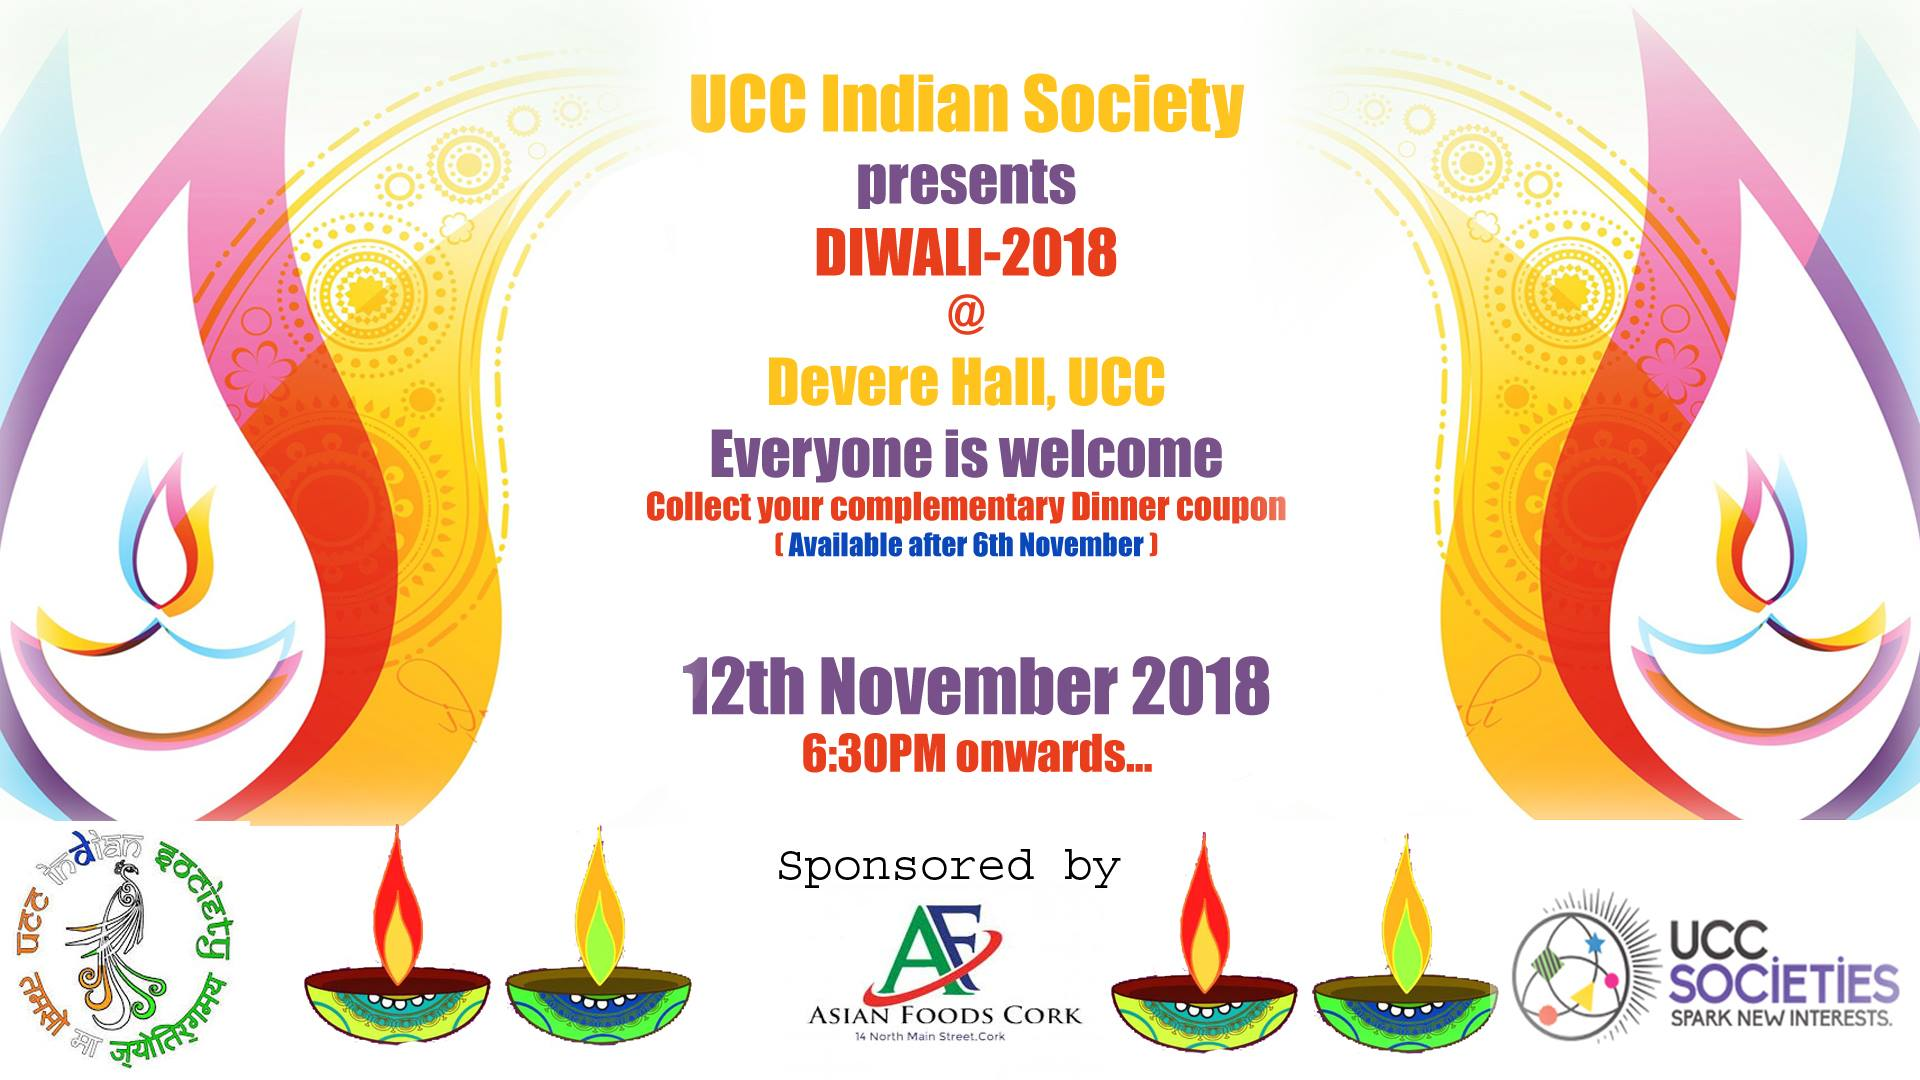 UCC Diwali- 12th November 2018